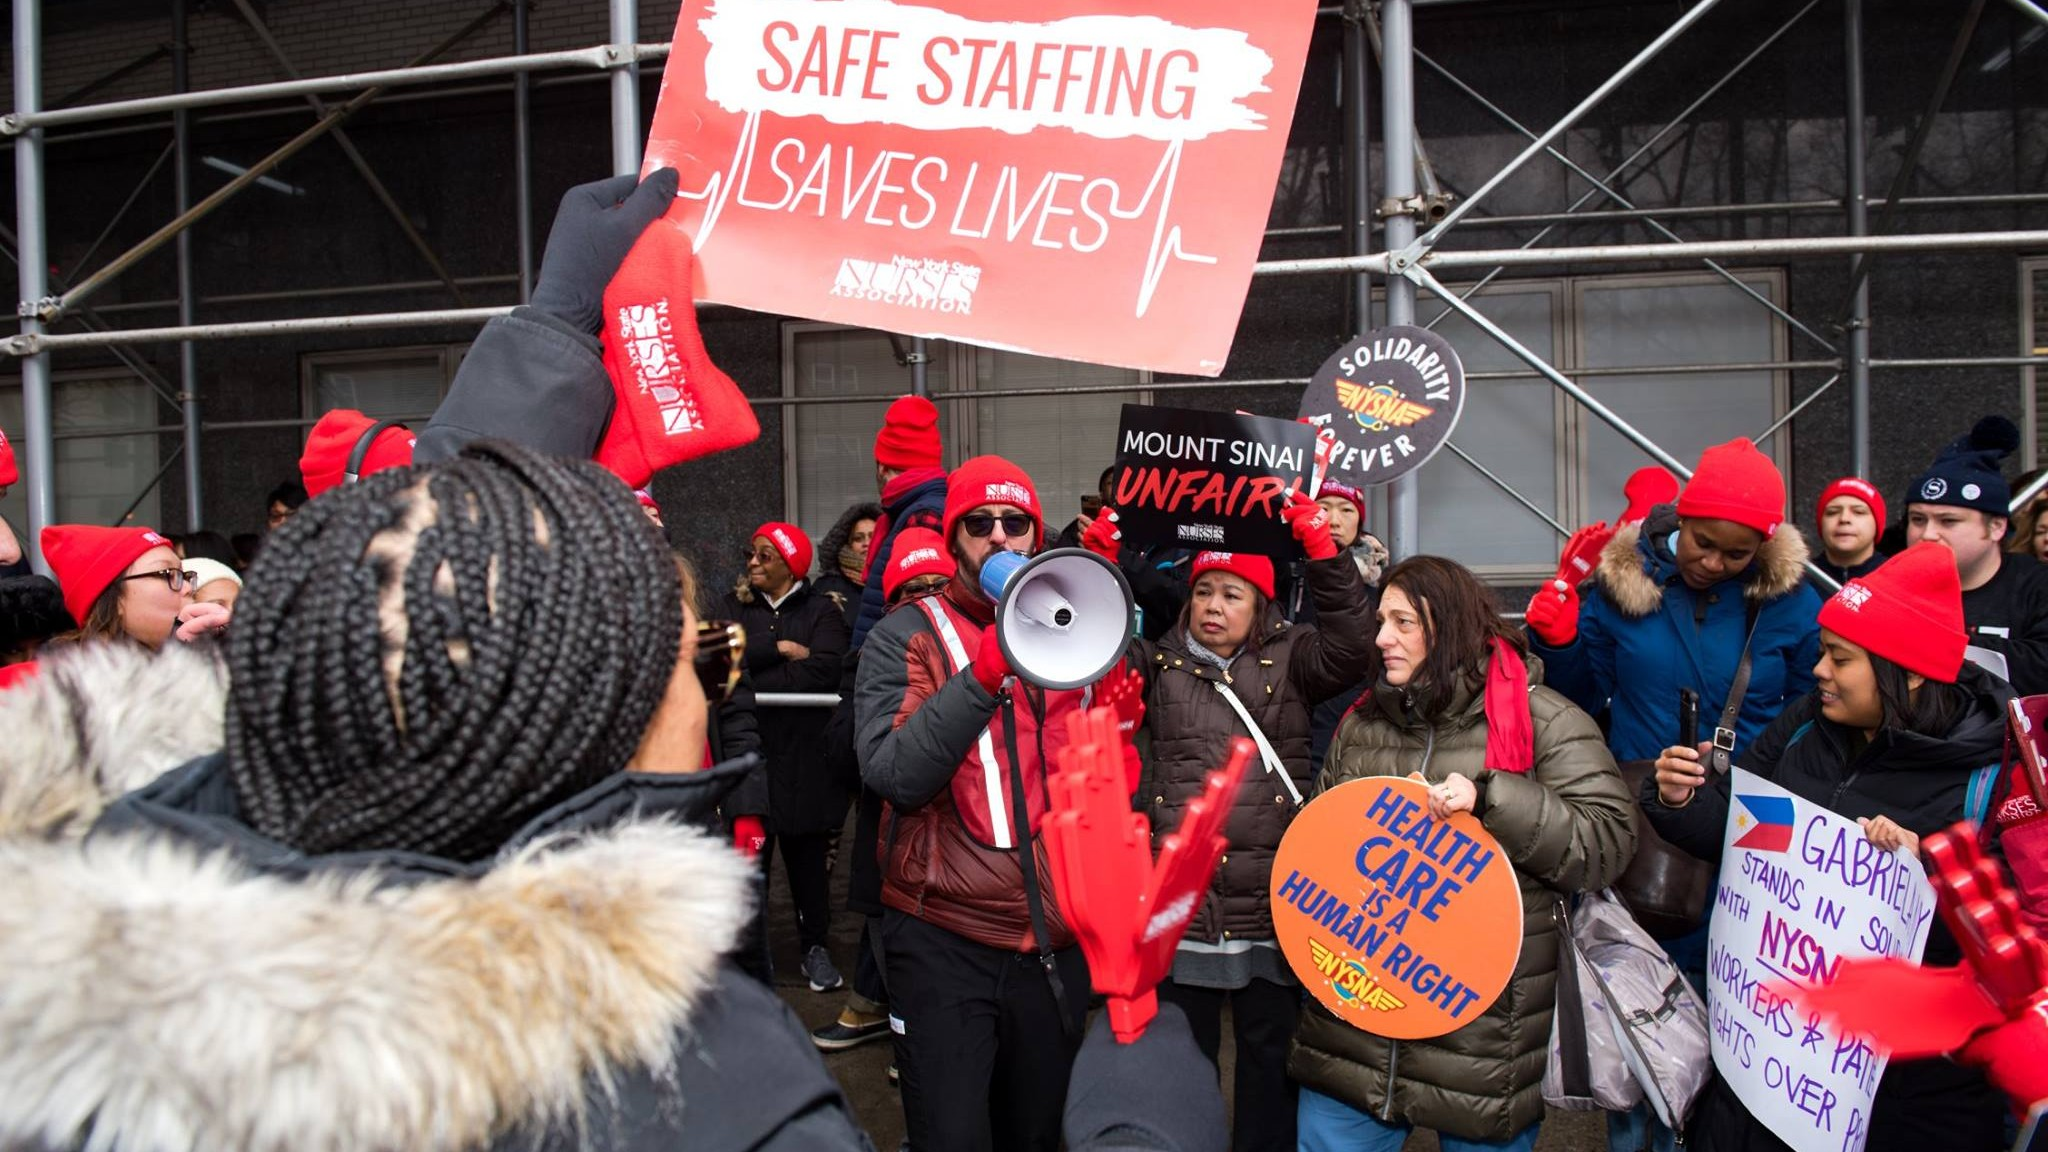 10,000 NYC nurses are about to go on strike over understaffing